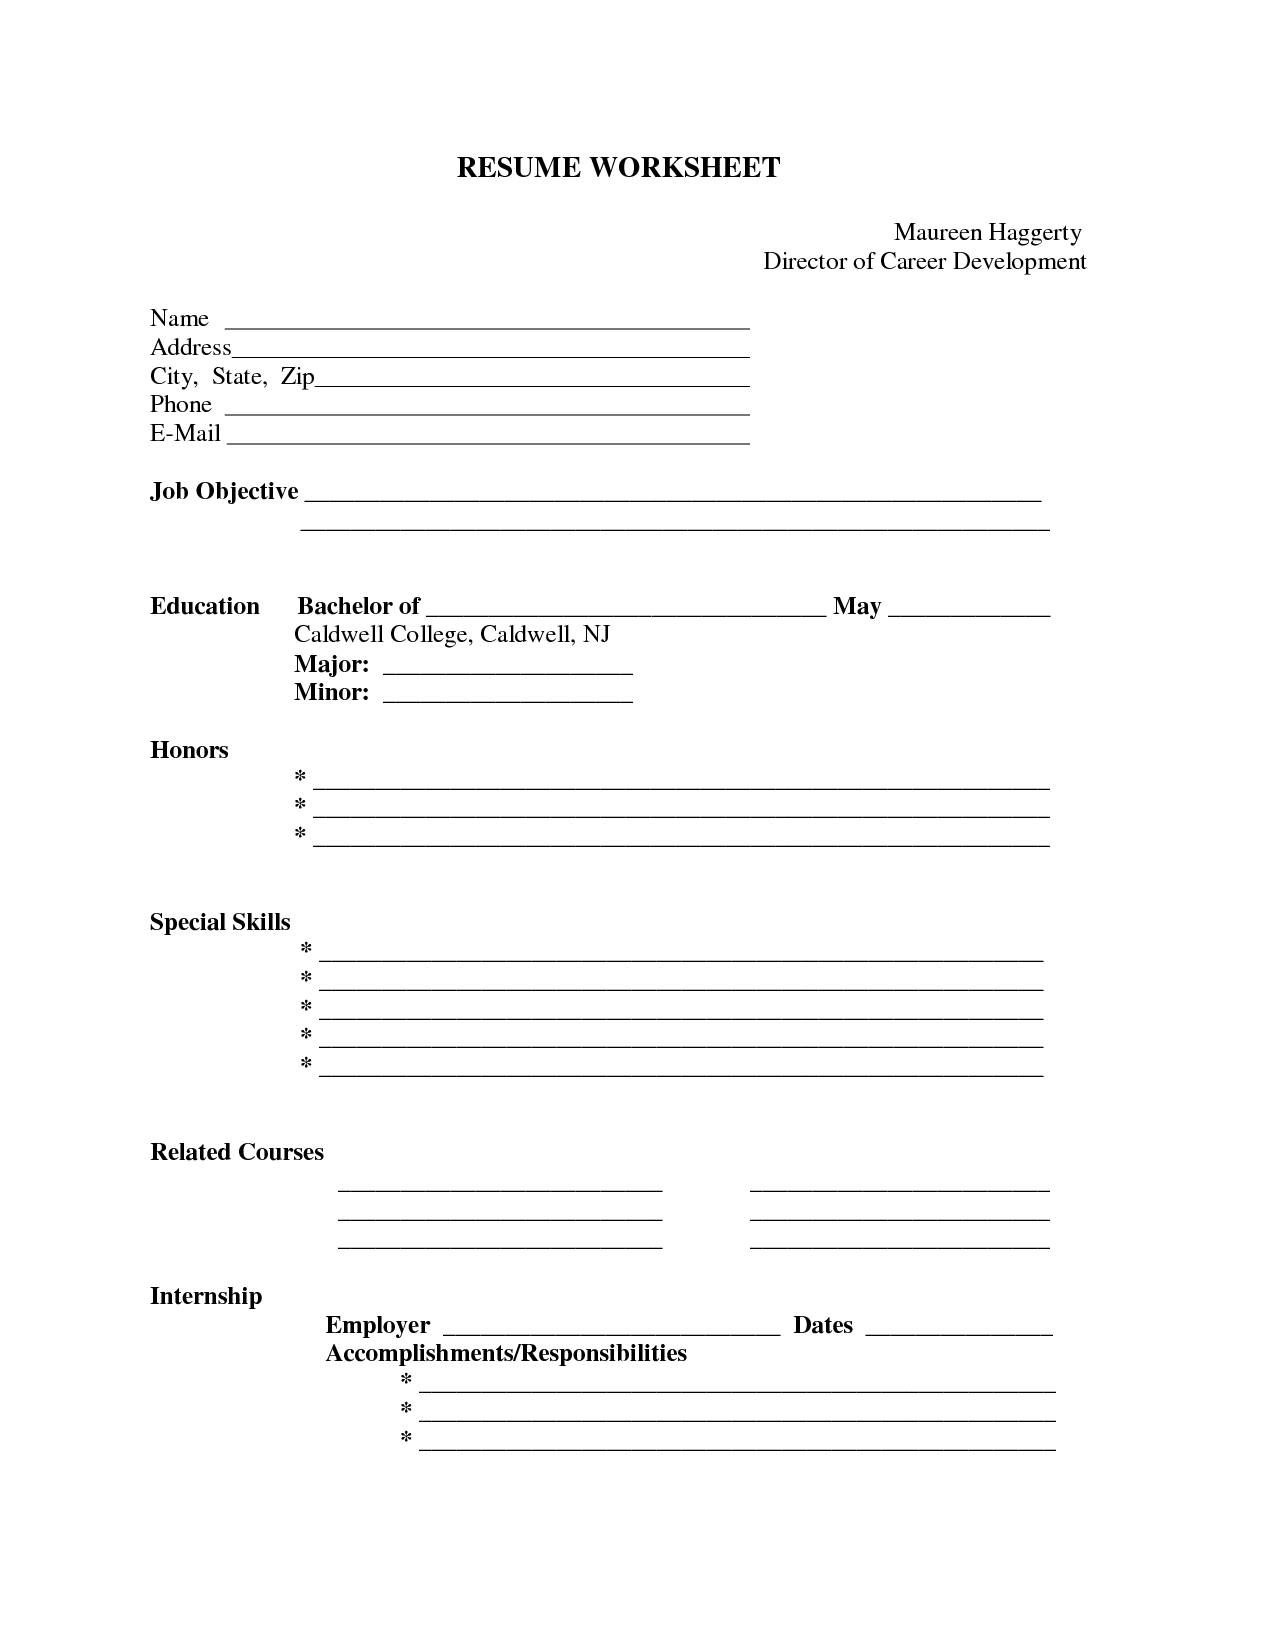 Blank Resume Form To Print Fill In The Cv Template 4